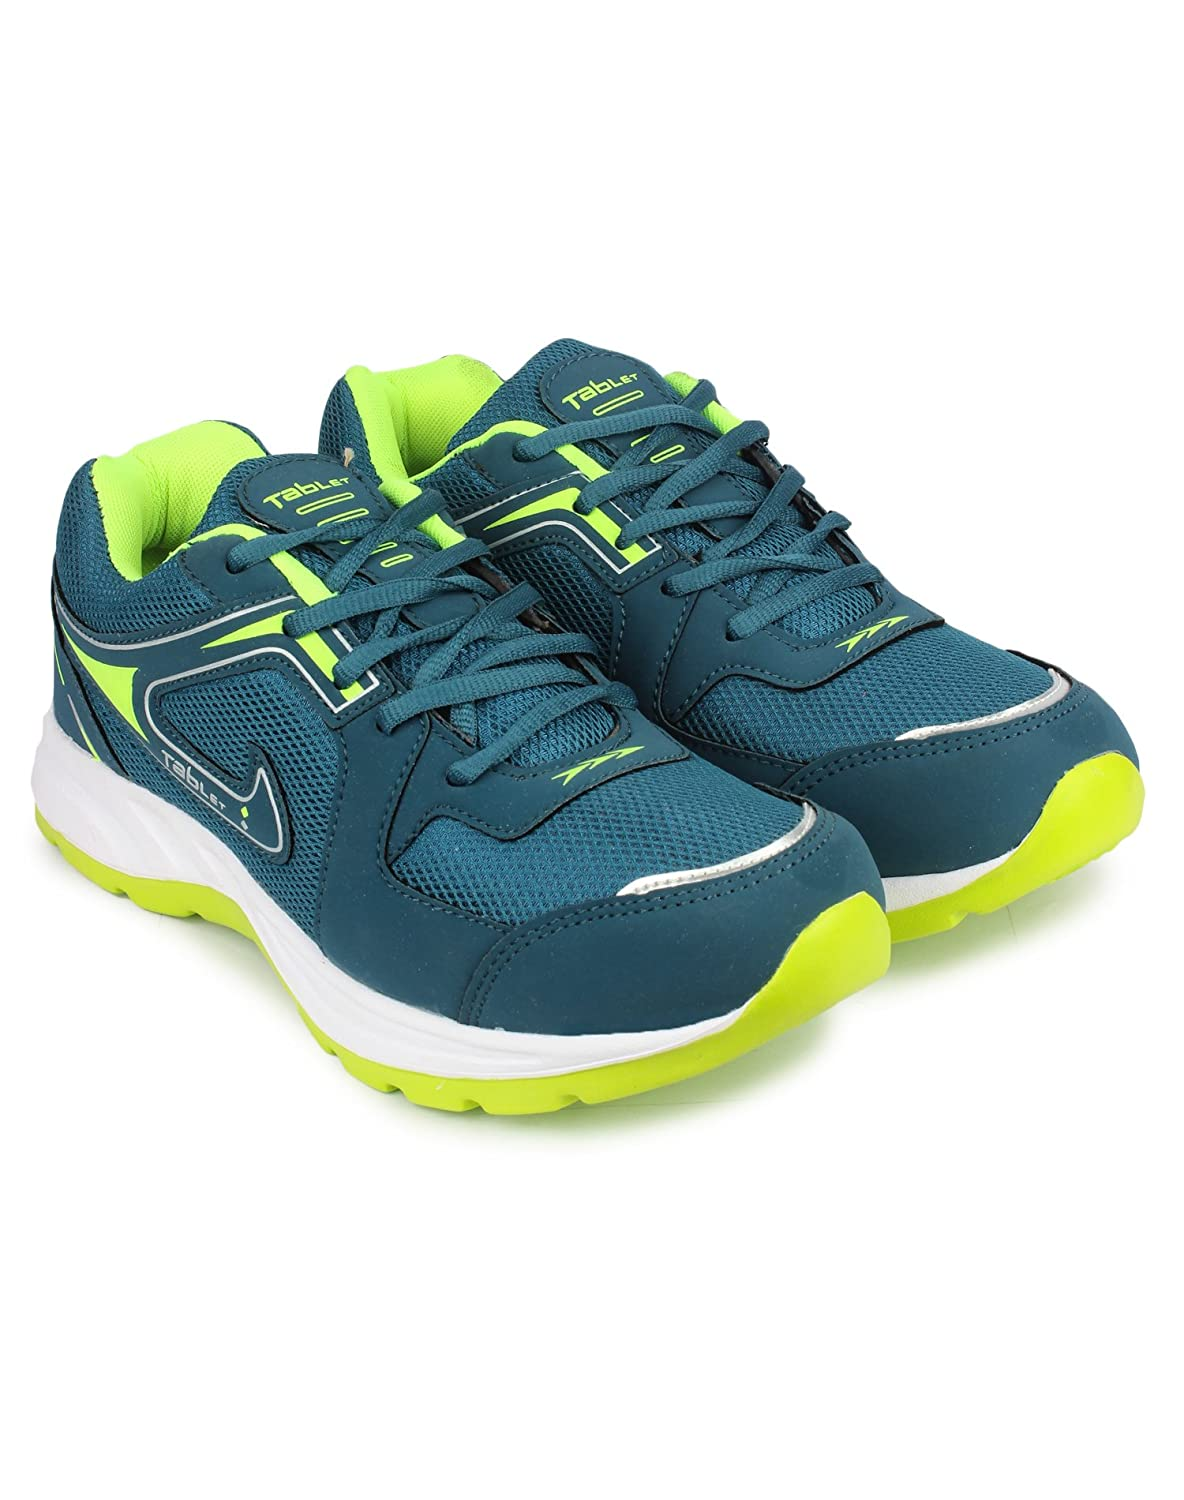 discount newest sale marketable Columbus Columbus-TB-12-DGreyYellow Gray Training Shoes buy cheap best wholesale buy cheap newest clearance pre order HAeAtY